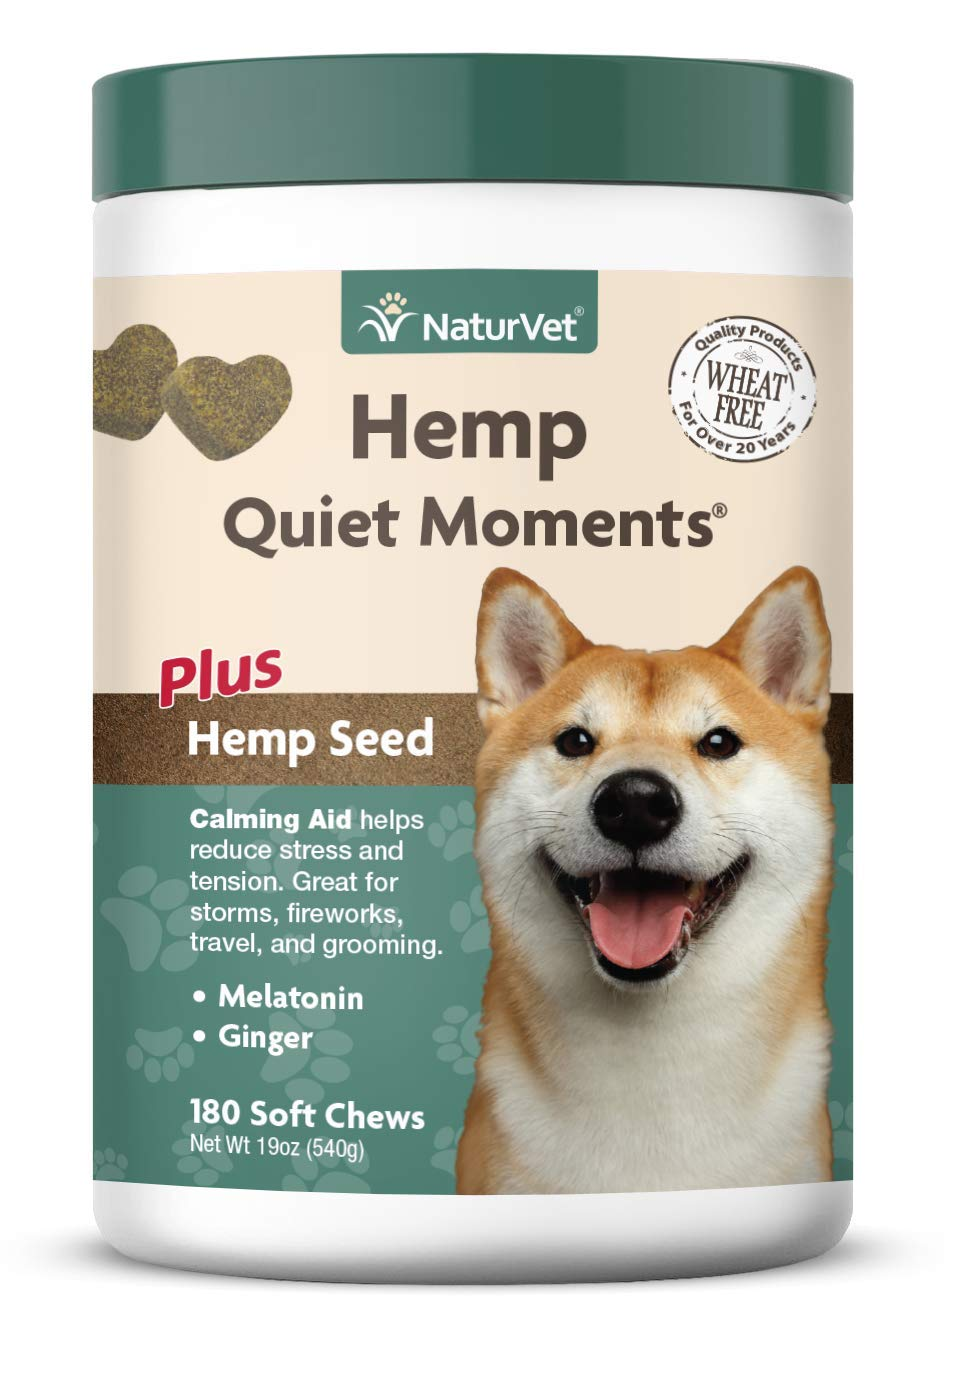 NaturVet - Hemp Quiet Moments Calming Aid for Dogs - Plus Hemp Seed - Helps Reduce Stress & Promote Relaxation - Great for Storms, Fireworks, Separation, Travel & Grooming - 180 Soft Chews by NaturVet